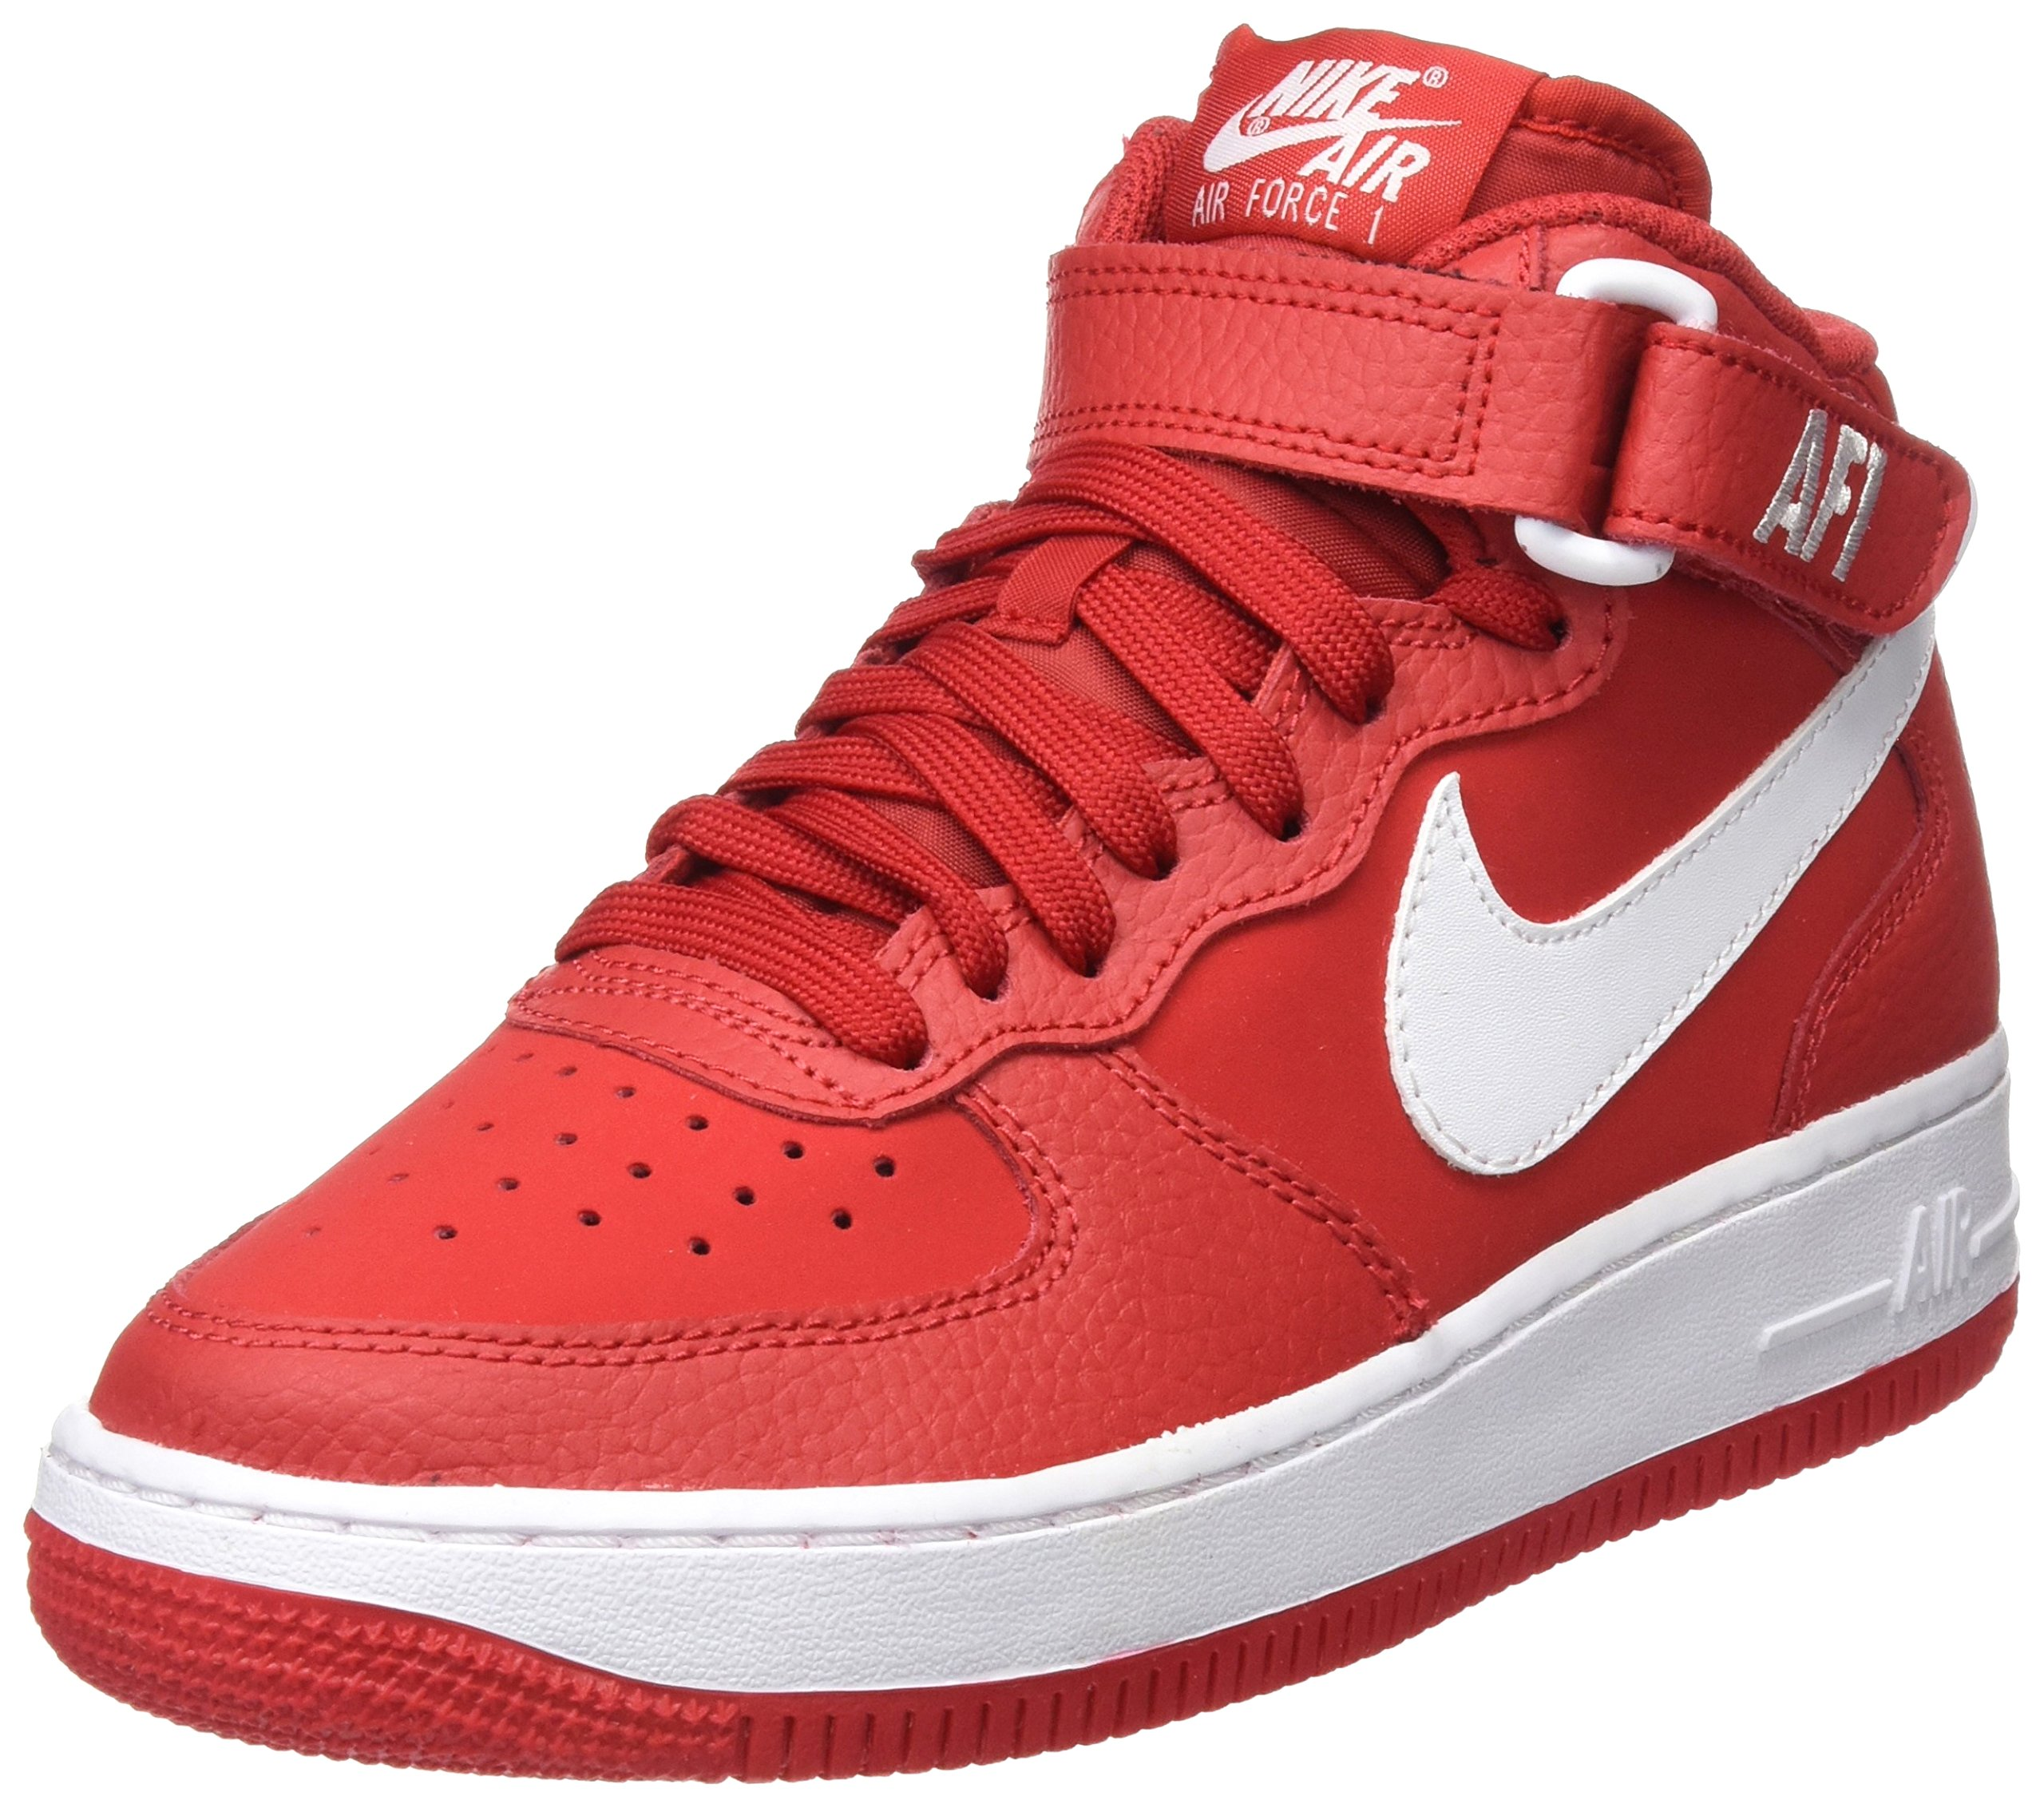 huge discount ed04c 20d84 Galleon - Nike Kids AIR Force 1 MID (GS) RED White Size 5.5